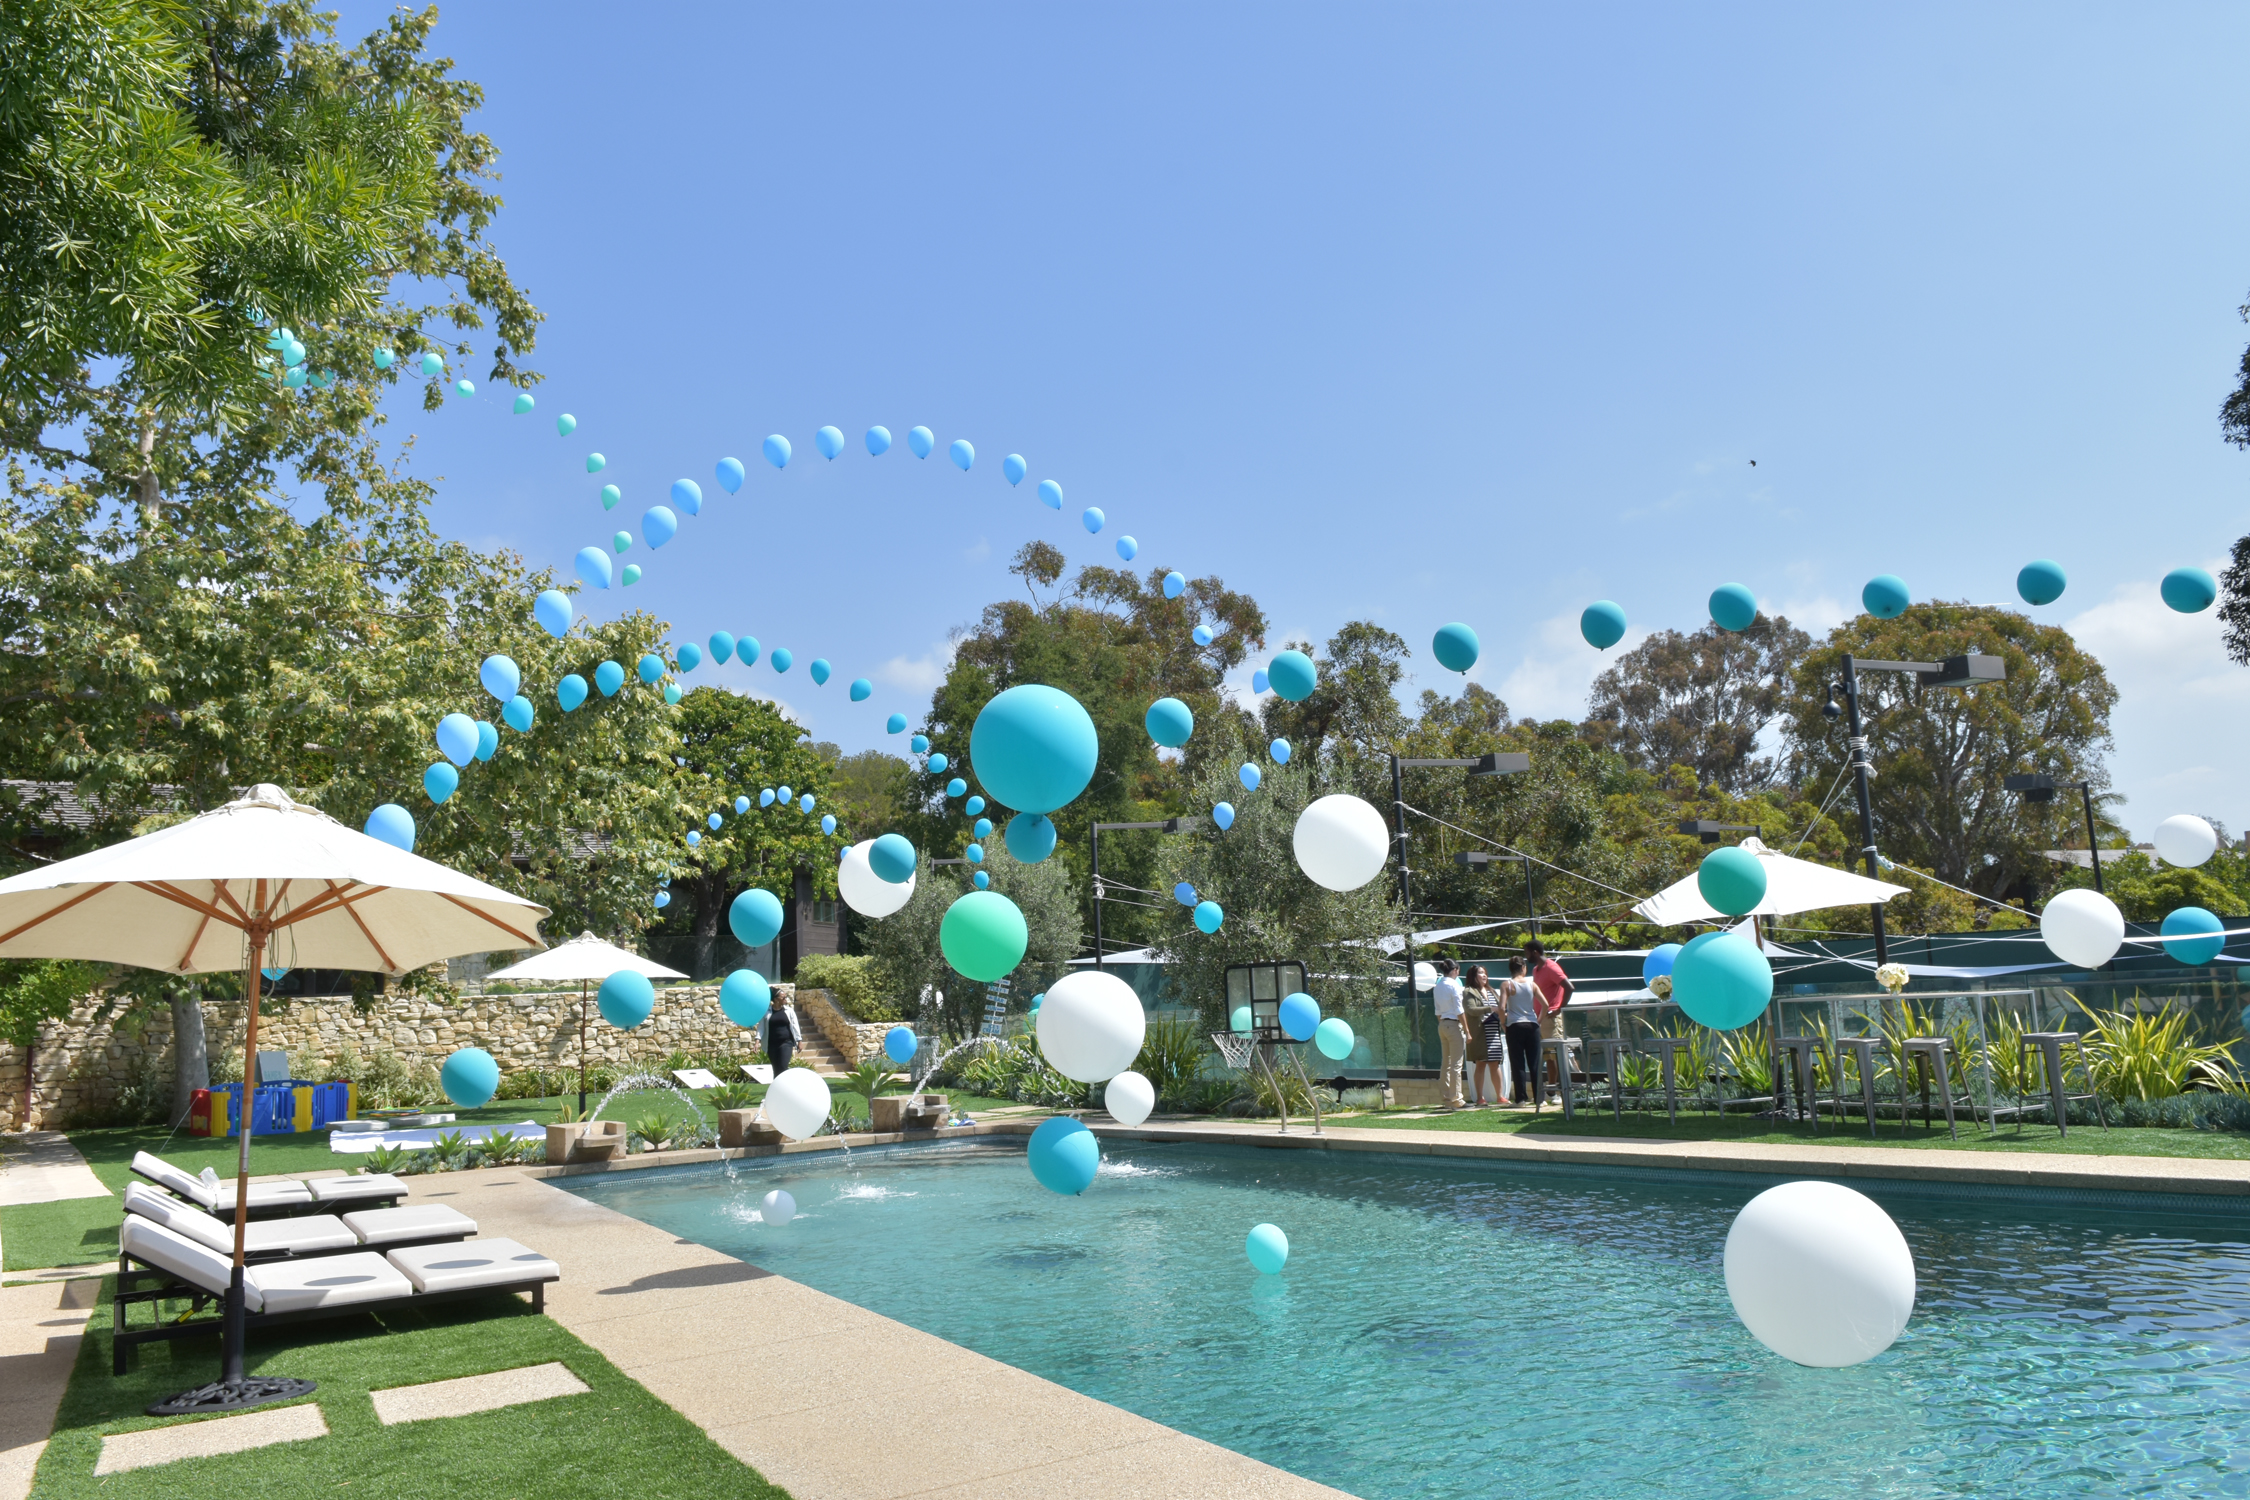 tarynco-birthday-balloons-party-event.jpg